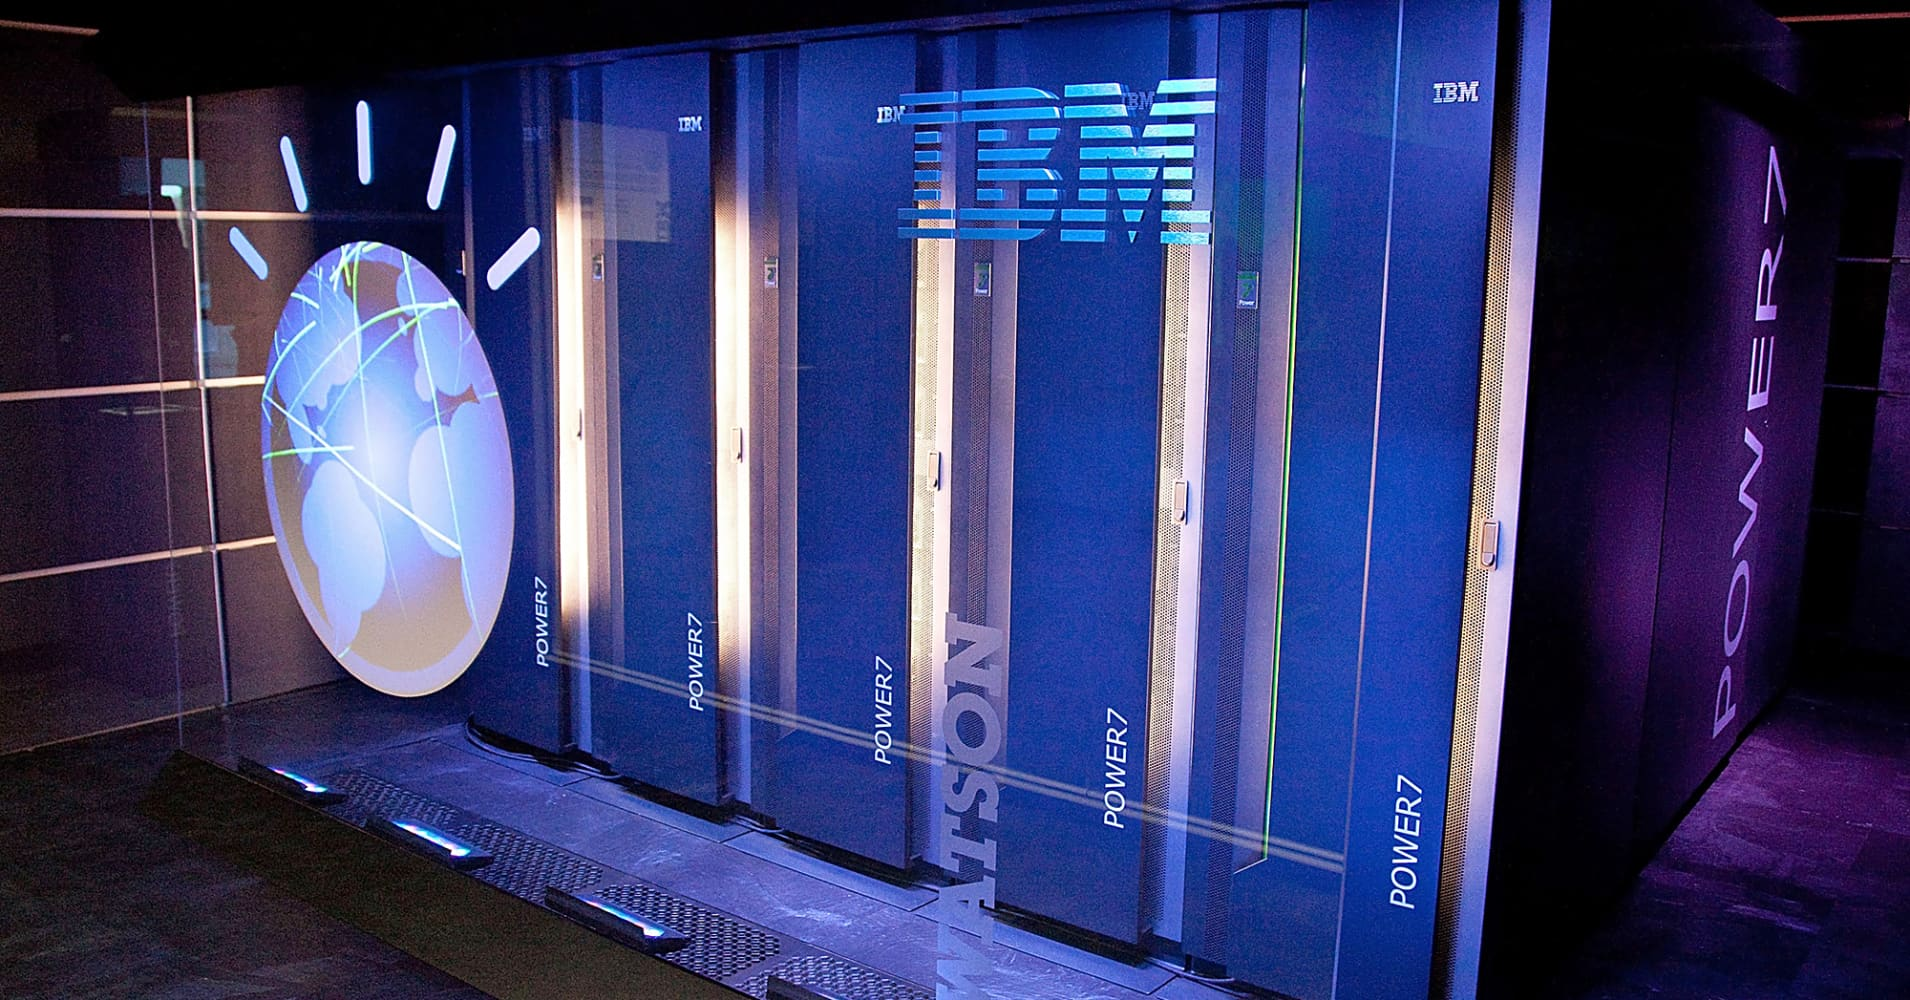 IBM's Watson is getting into ETF business as robot attack on stock market heats up